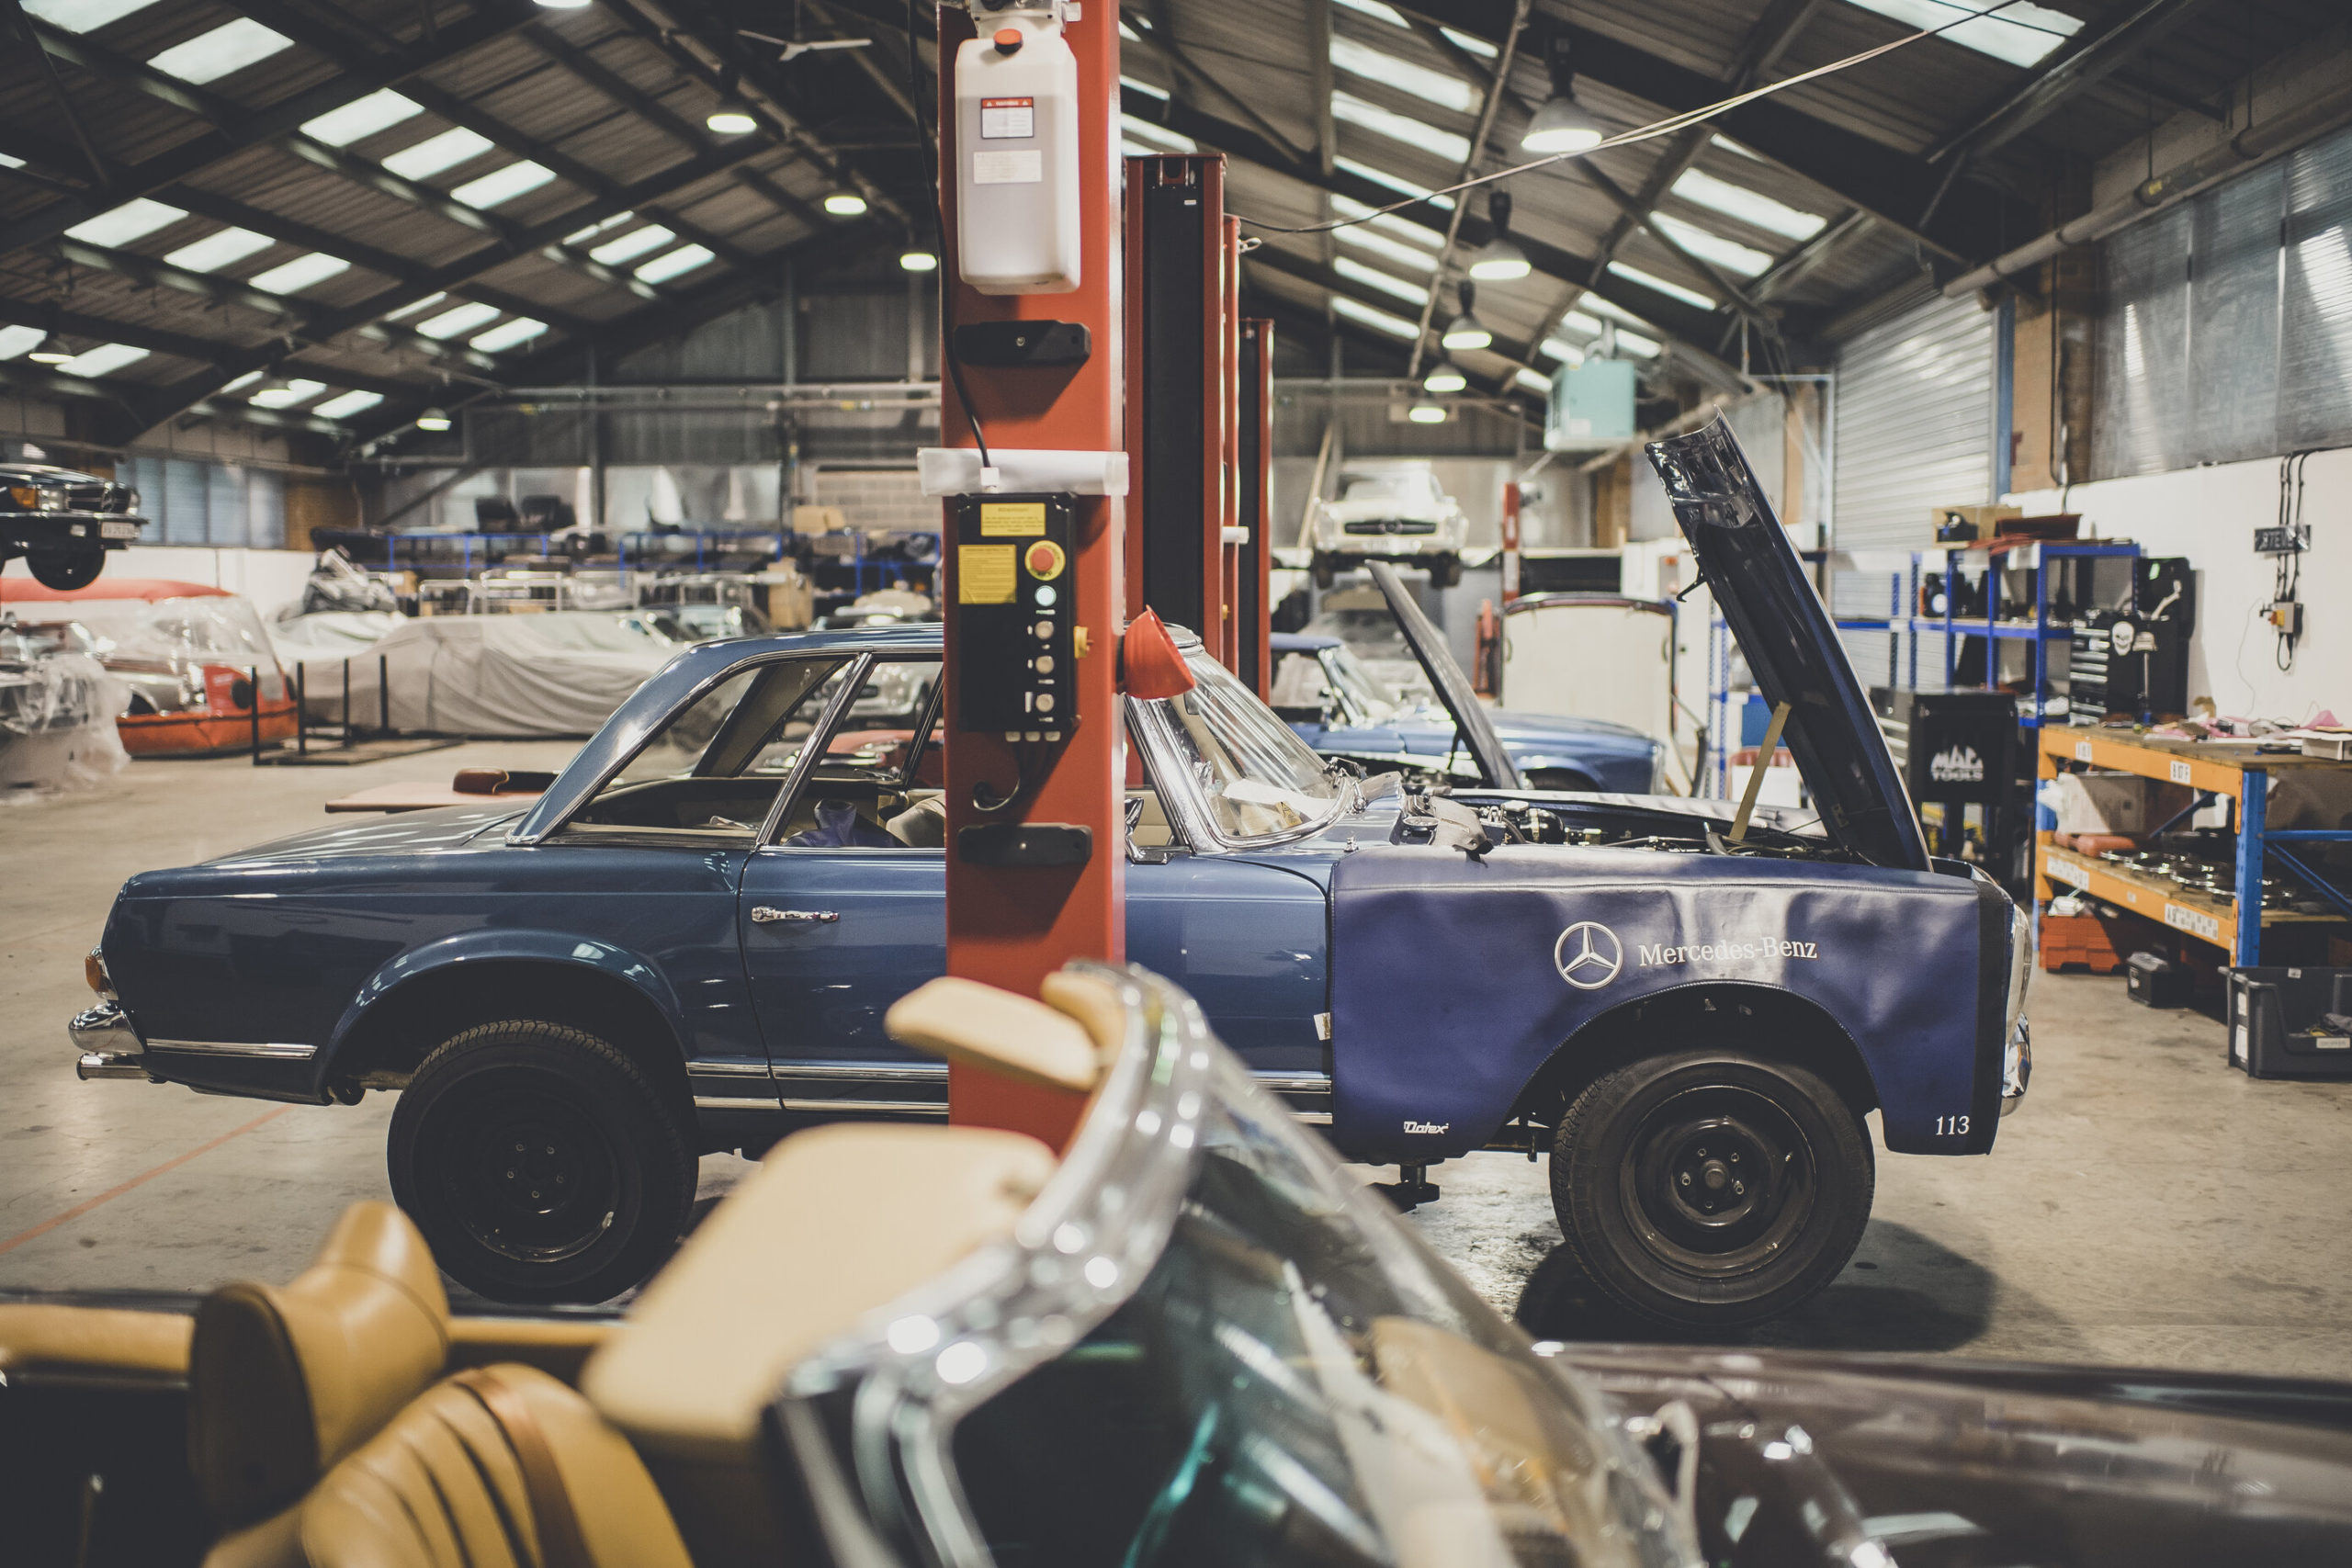 SLSHOP's Workshop where we replace parts that could be affected by E10 Fuel